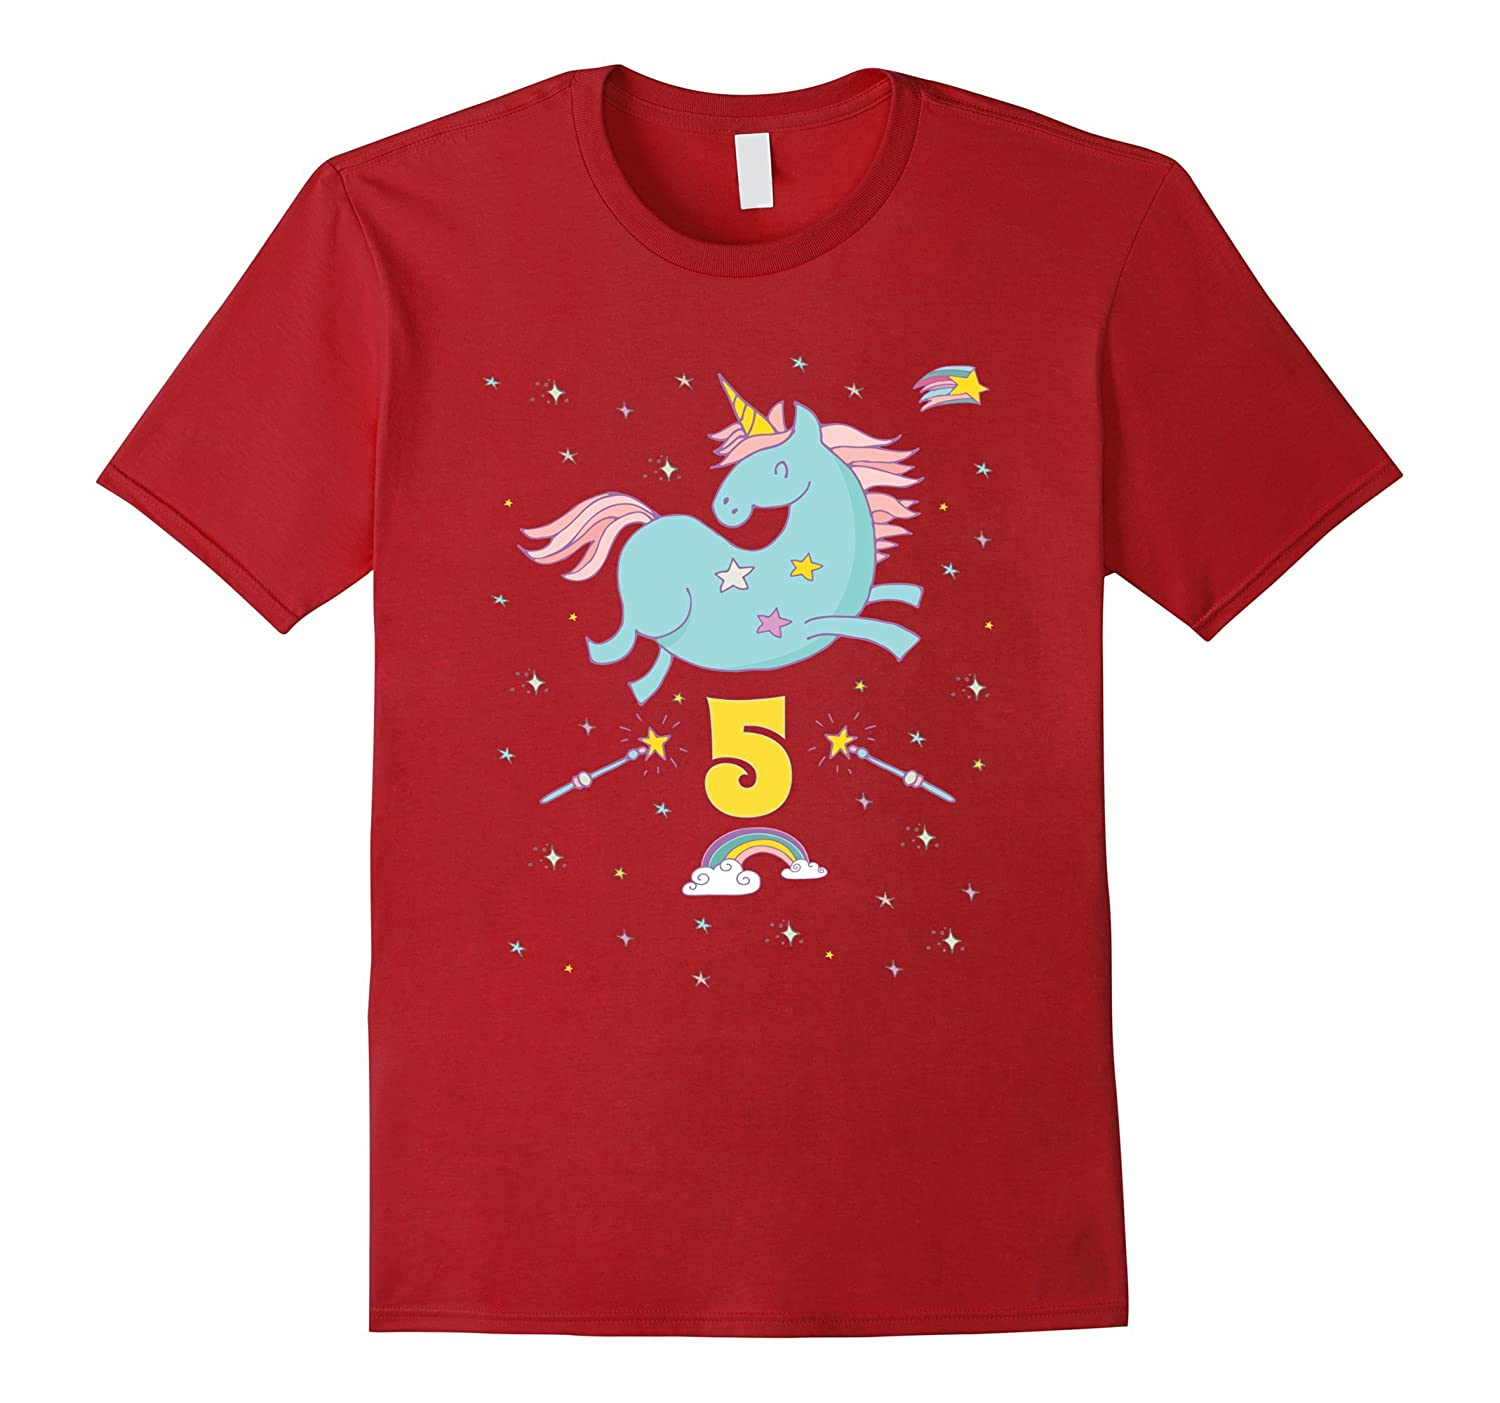 Unicorn Rainbow Birthday Shirt 5 Five Year Old Girl Boy PJ TD